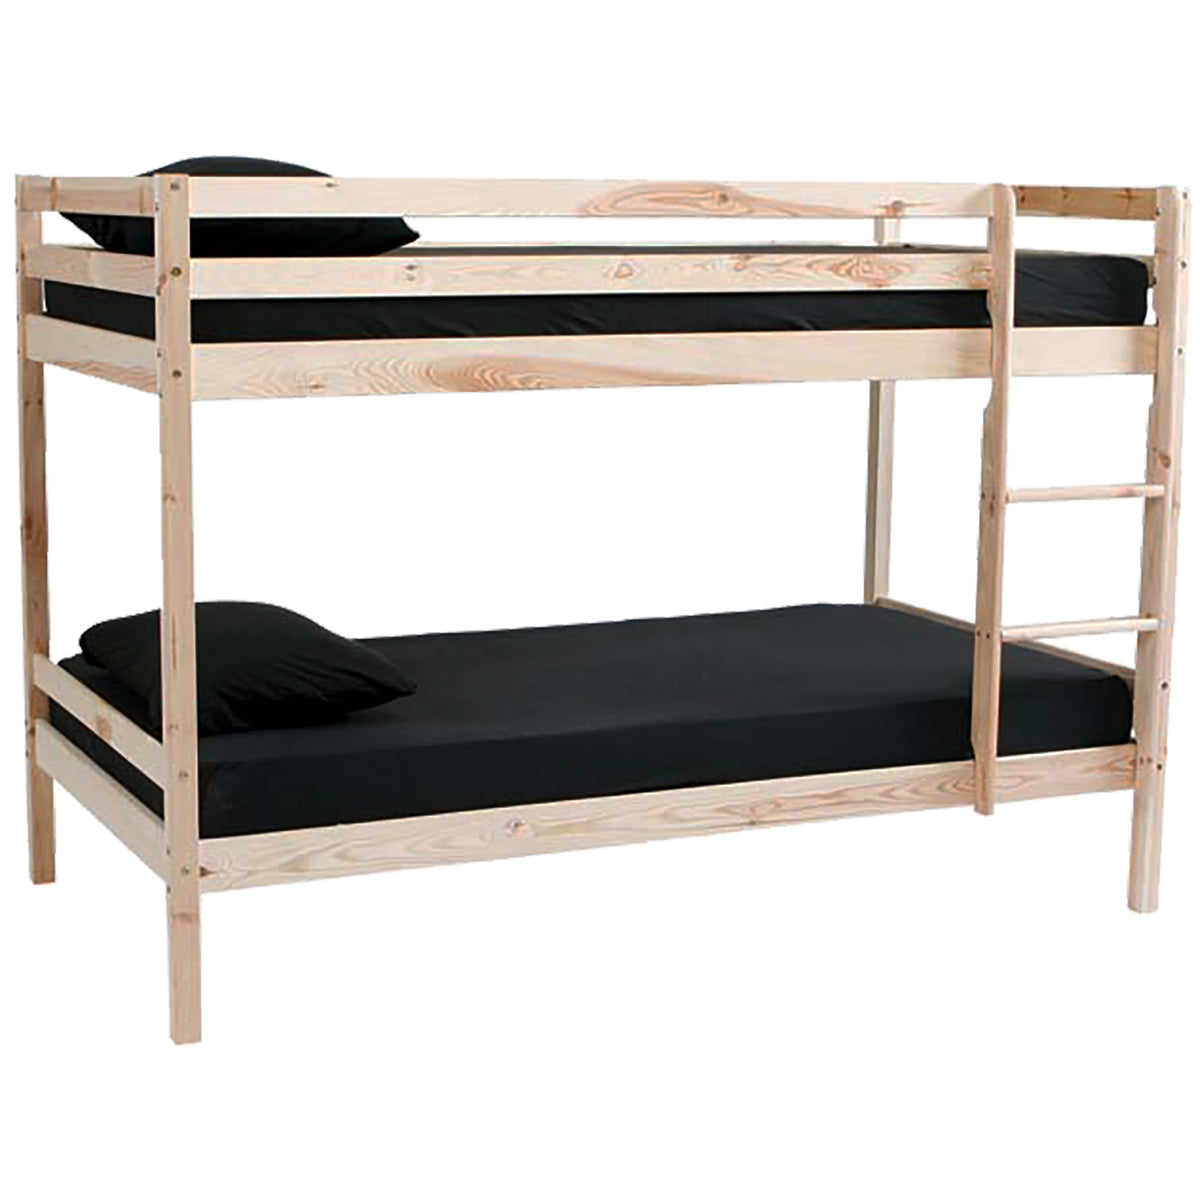 Simple Bunk Beds Online Discount Shop For Electronics Apparel Toys Books Games Computers Shoes Jewelry Watches Baby Products Sports Outdoors Office Products Bed Bath Furniture Tools Hardware Automotive Parts